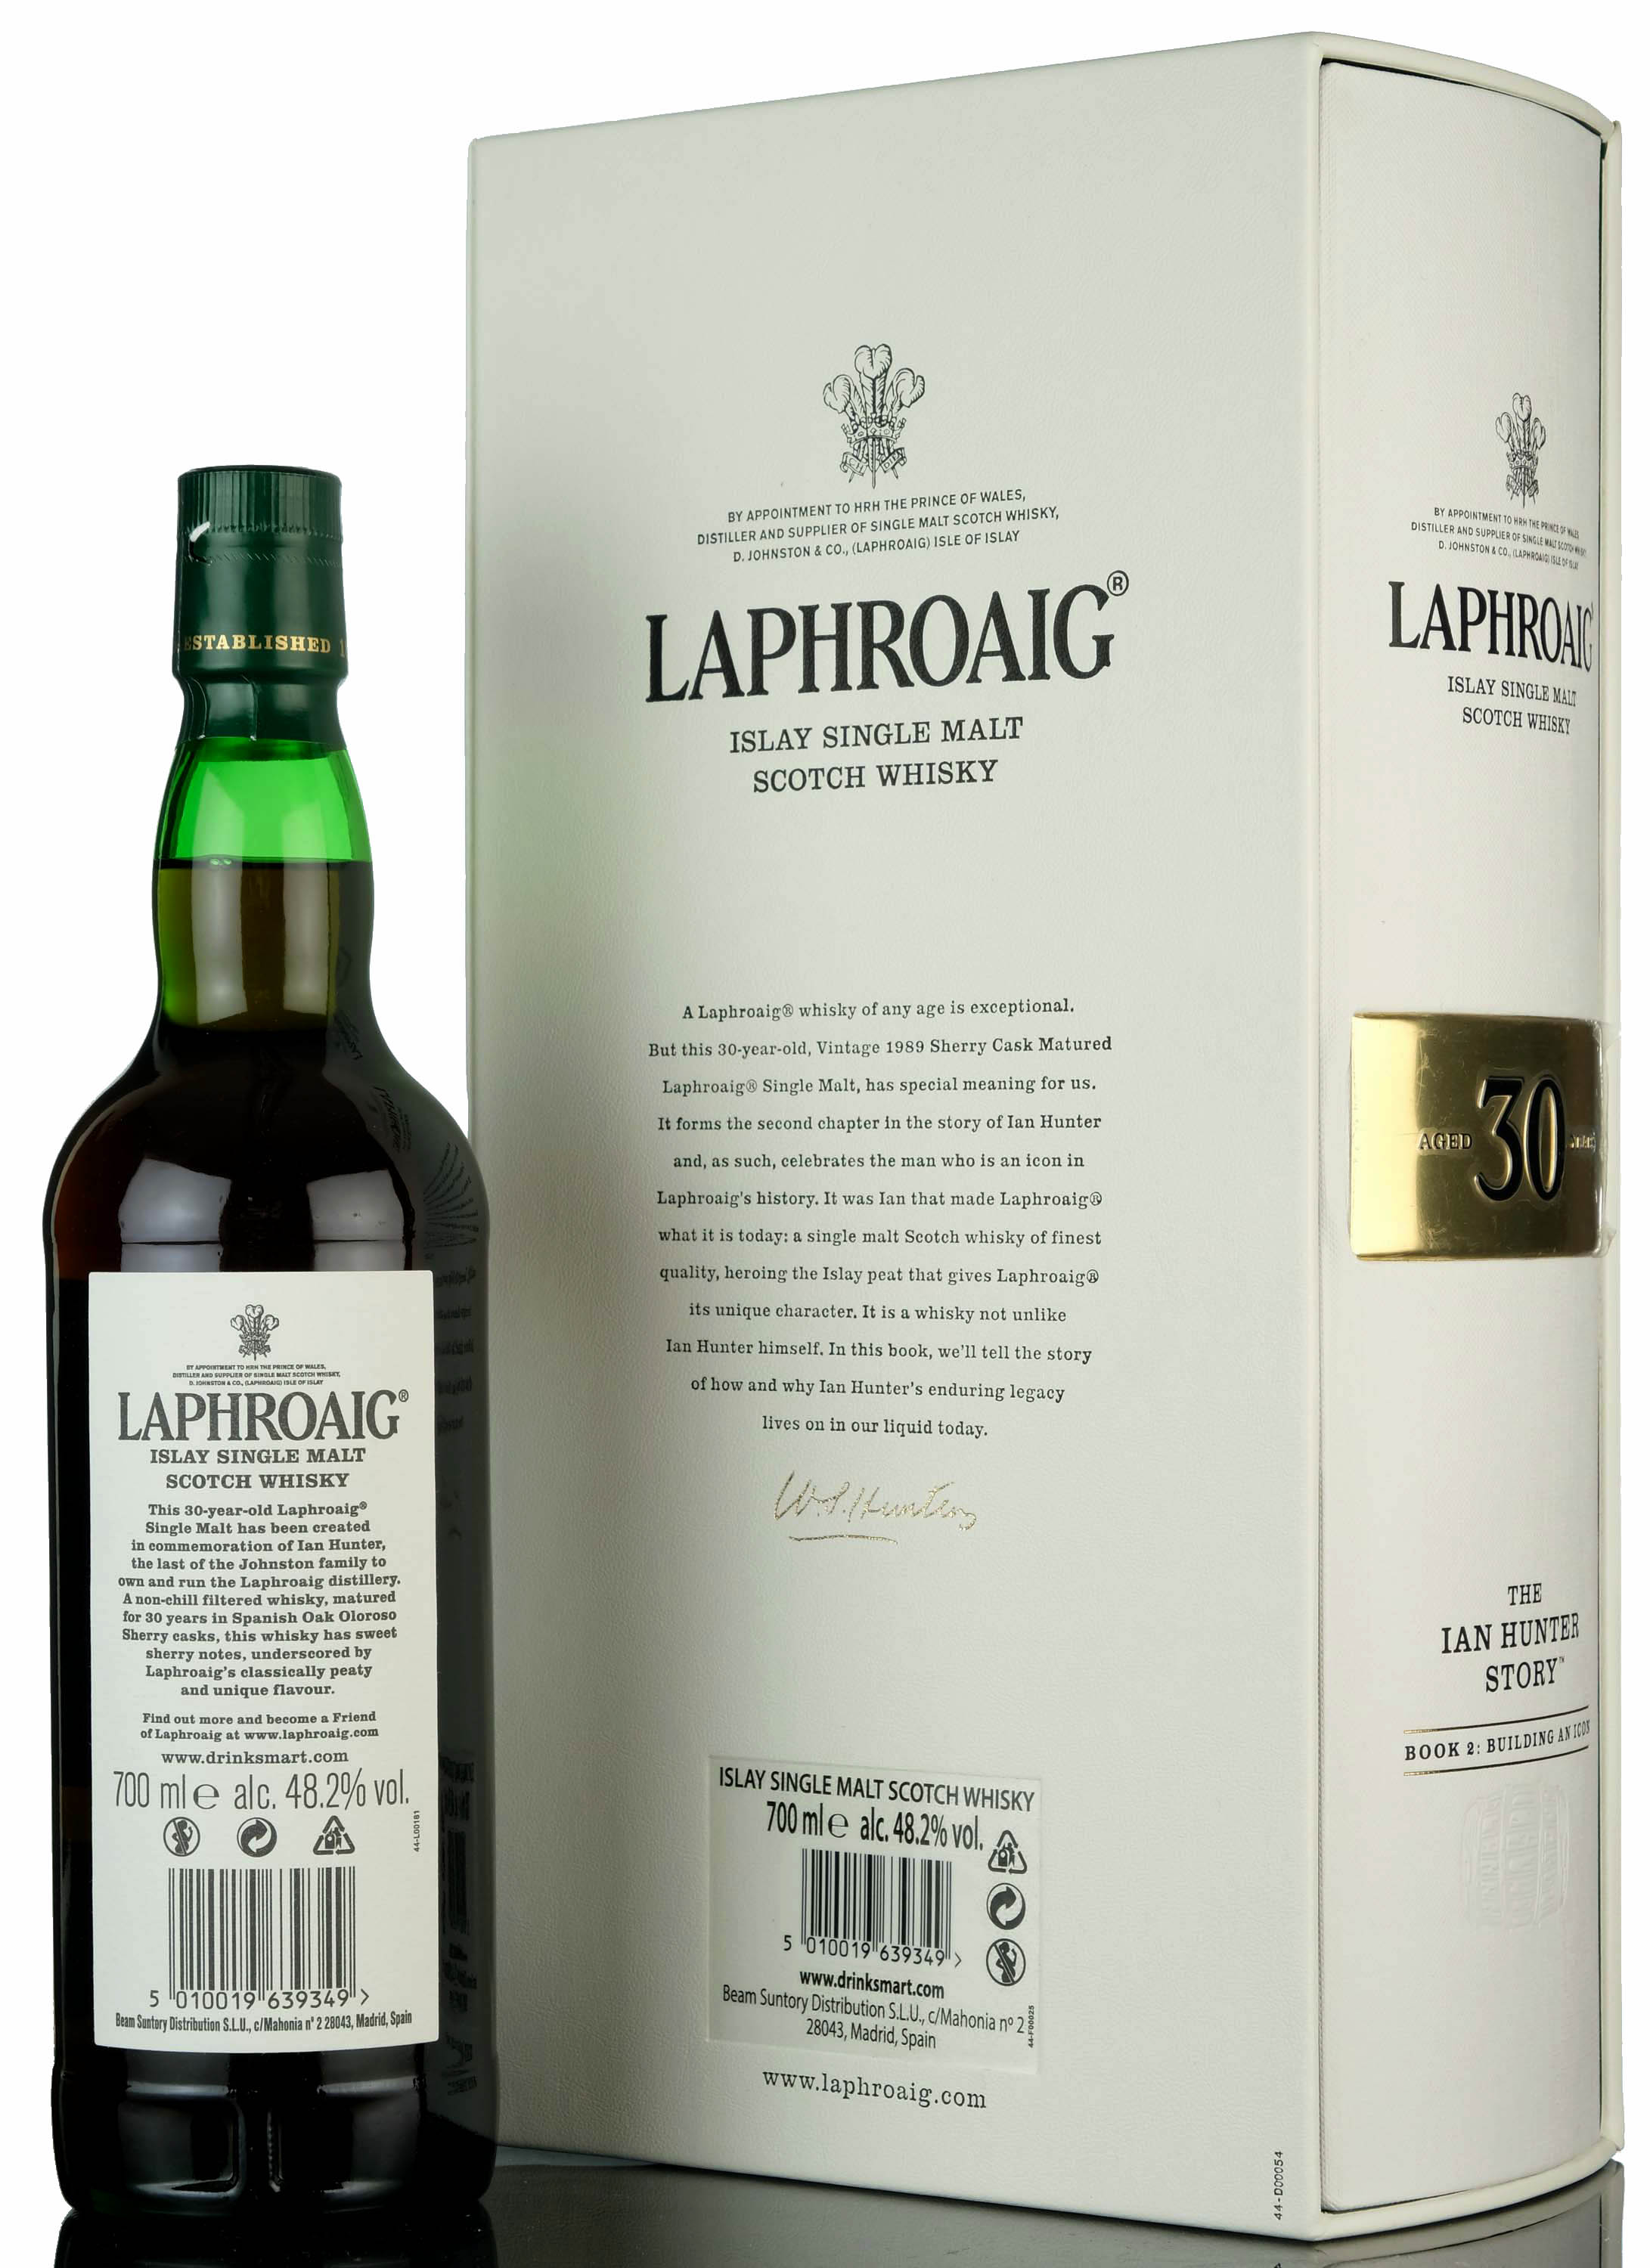 laphroaig 30 year old - the ian hunter story book 2